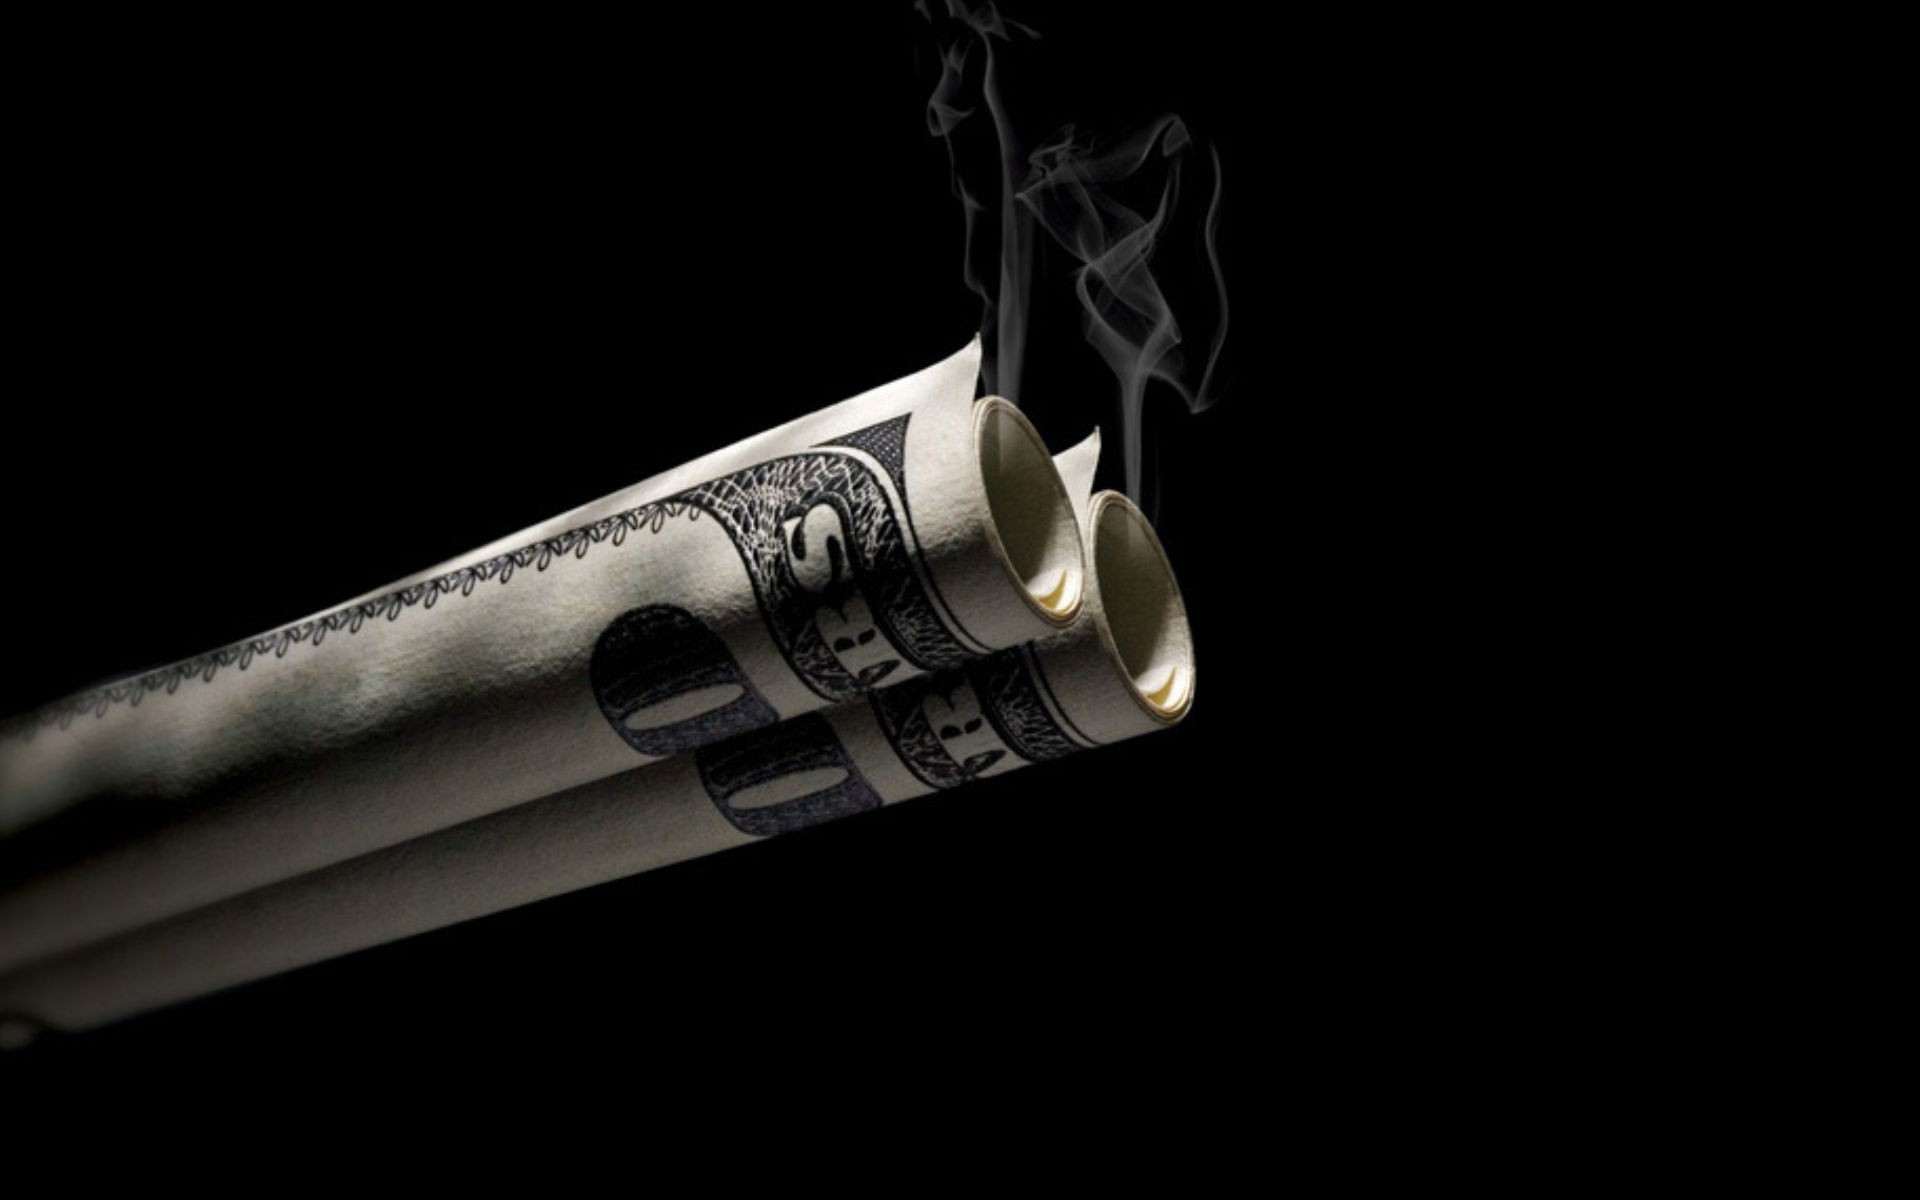 Smoking Money Wallpaper 1920x1200 Smoking Money Cigarettes 1920x1200